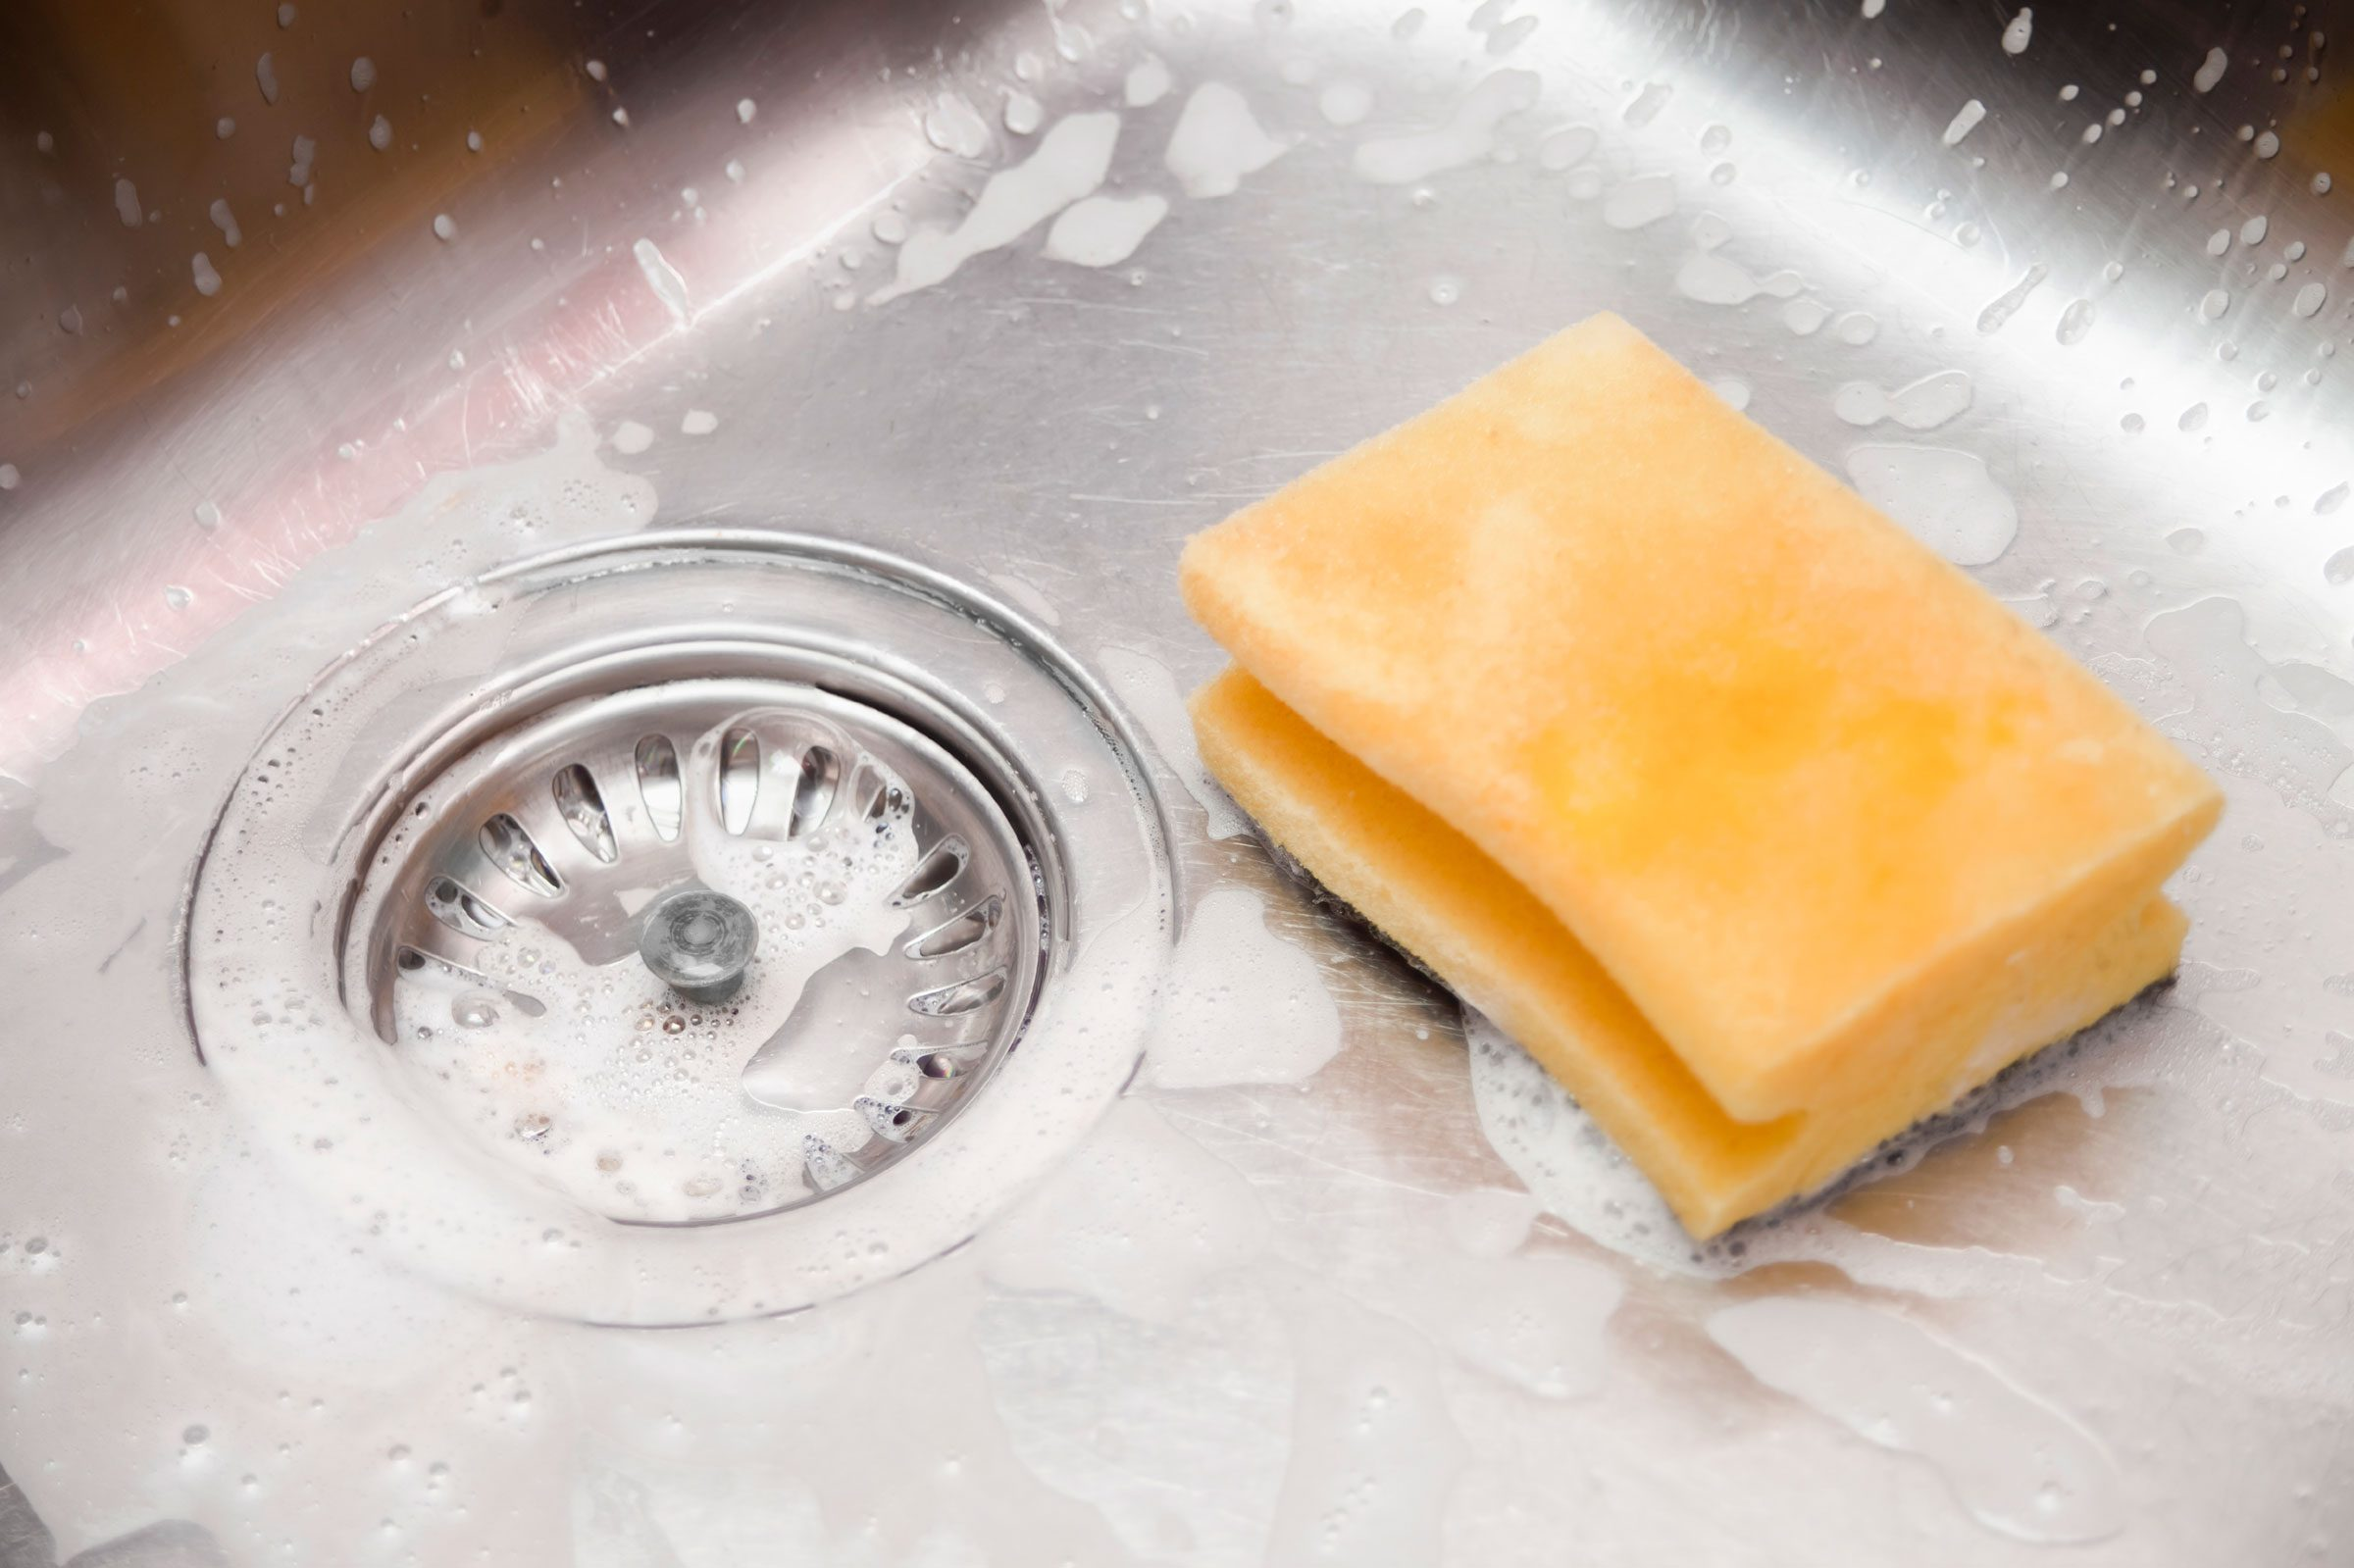 how to clean germ kitchen items sponge